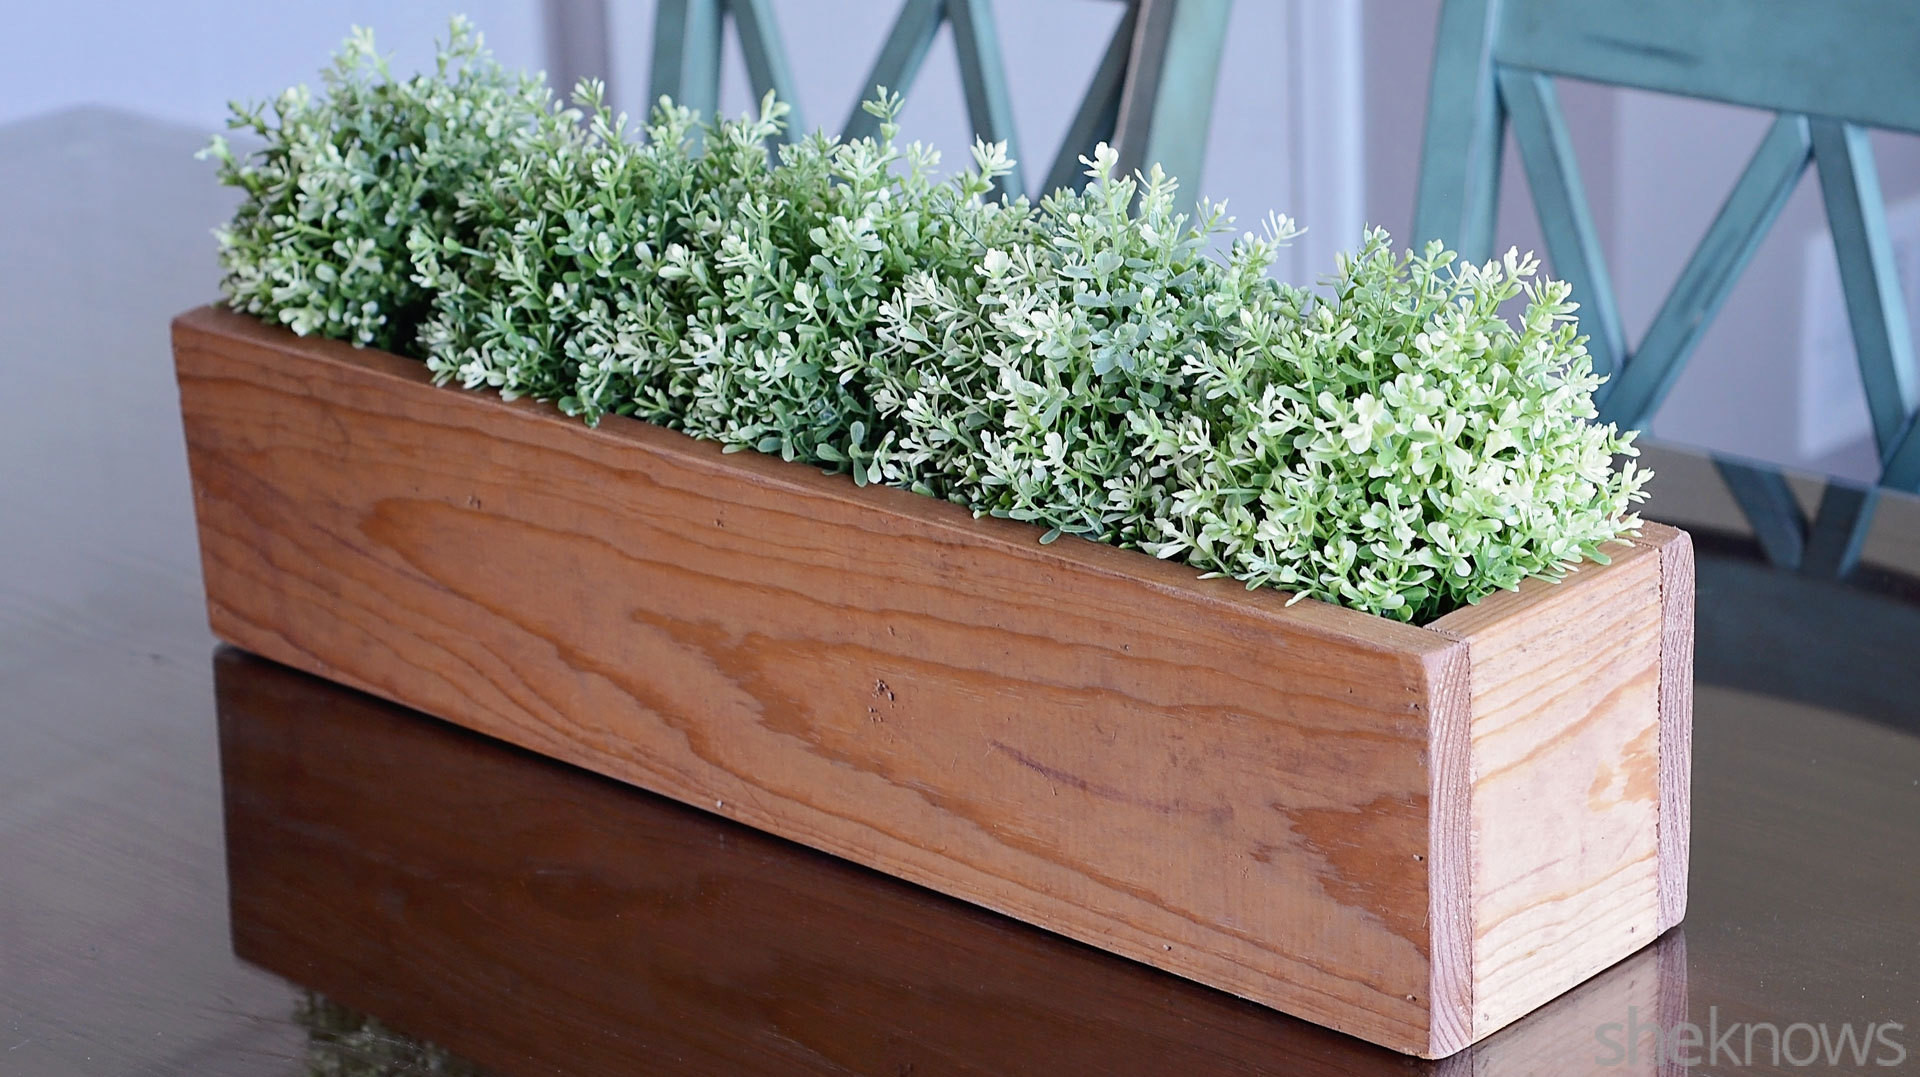 DIY Wooden Box Centerpiece  DIY wooden box centerpiece is an easy way to bring the